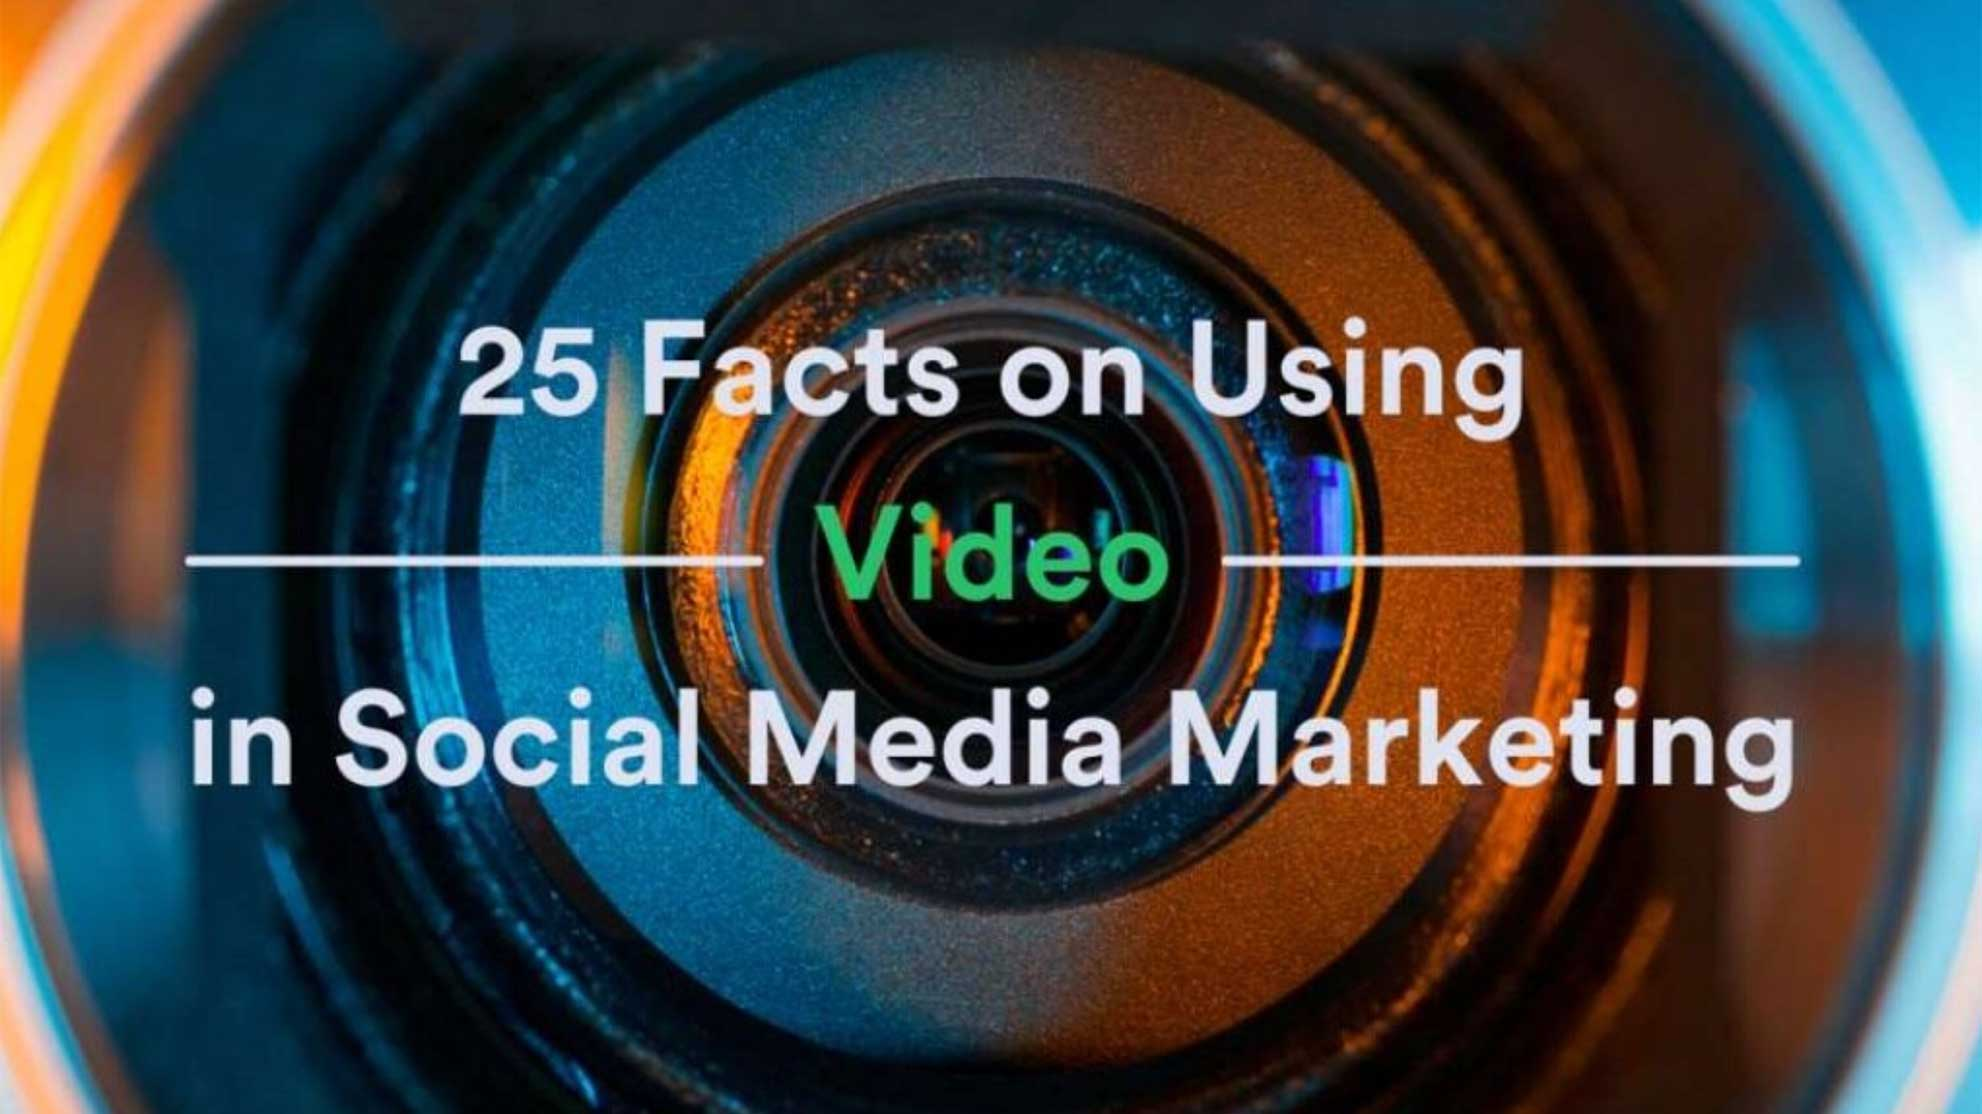 25 Facts on Using Video in Social Media Marketing